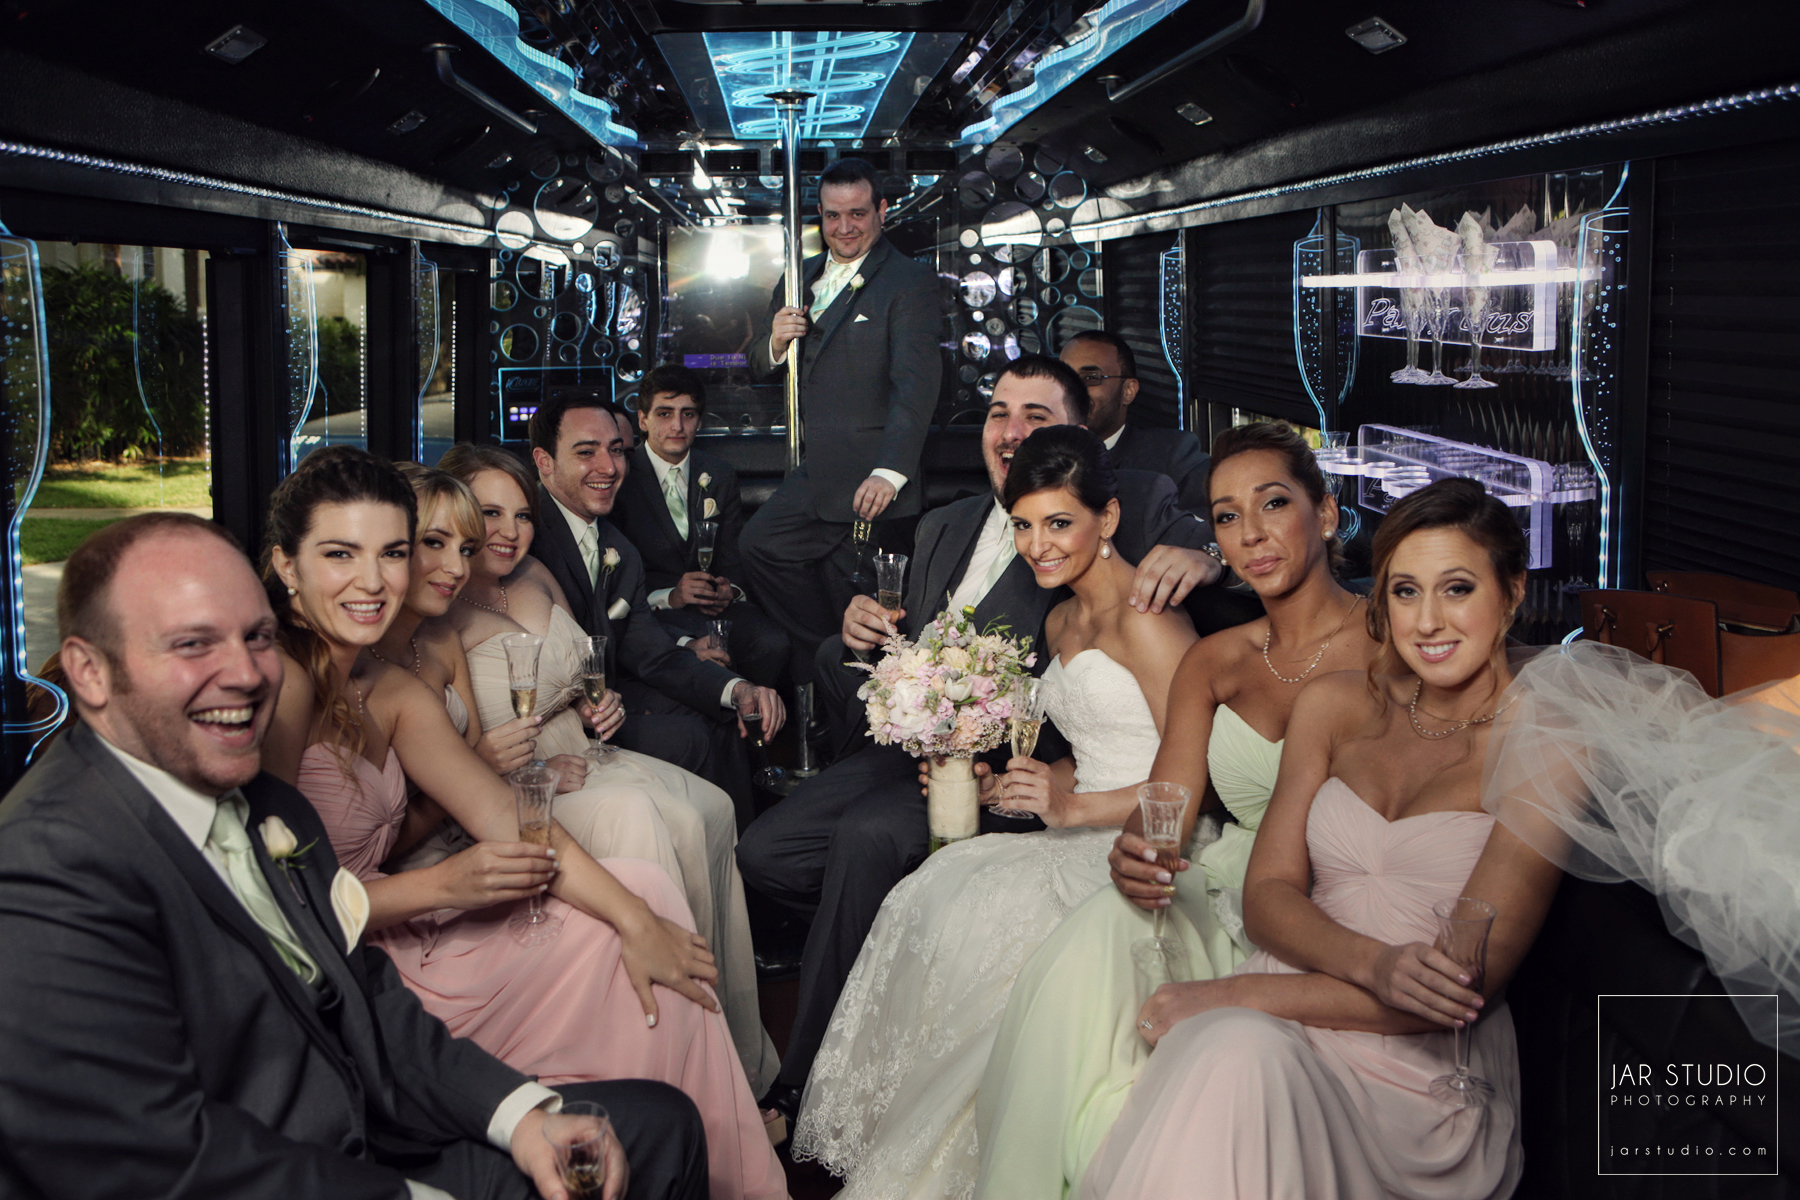 17-party-bus-fun-jarstudio-wedding-photography-orlando.JPG